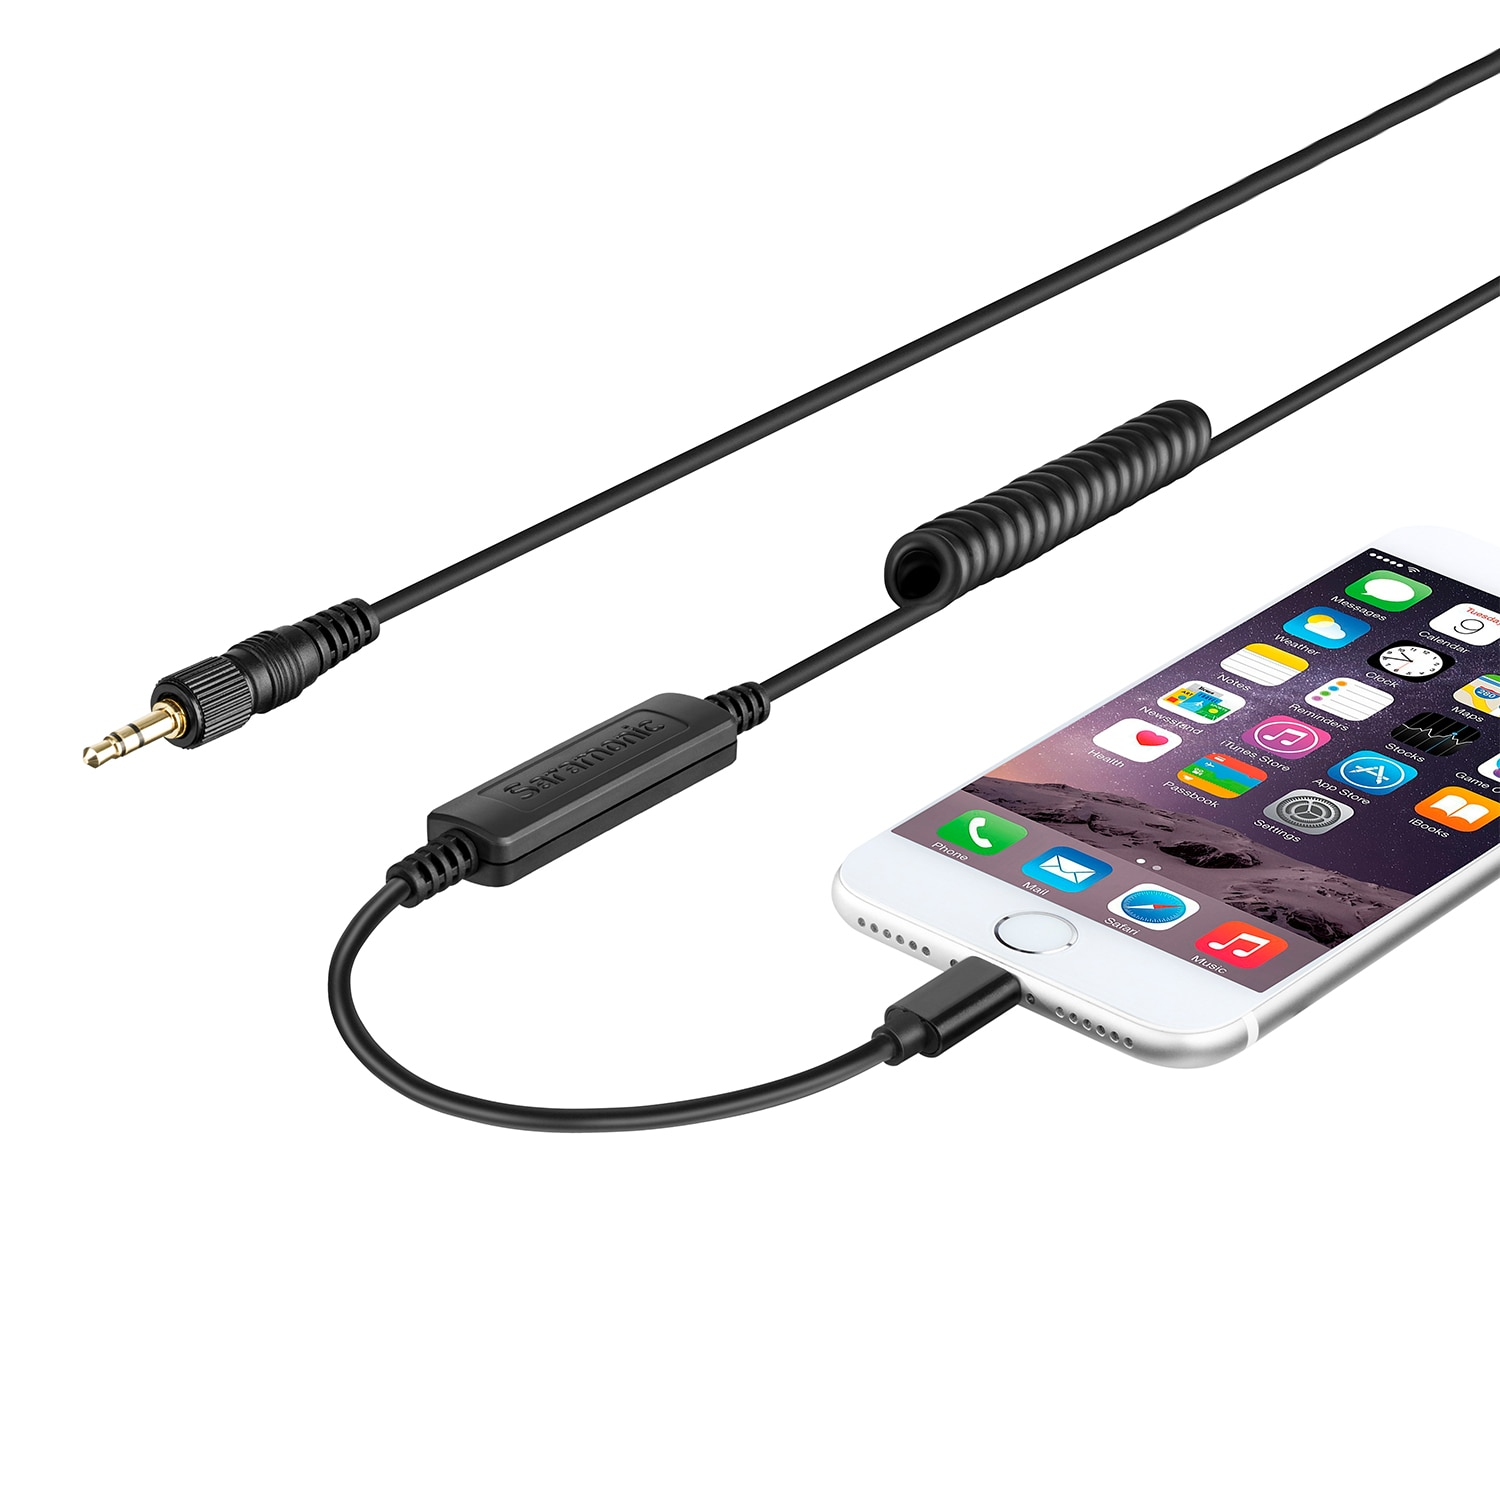 Saramonic LC-C35 Output Cable Locking 3.5mm Male Connector to Apple Certified Lightning for iOS Device Vlog Film Making Shoot enlarge